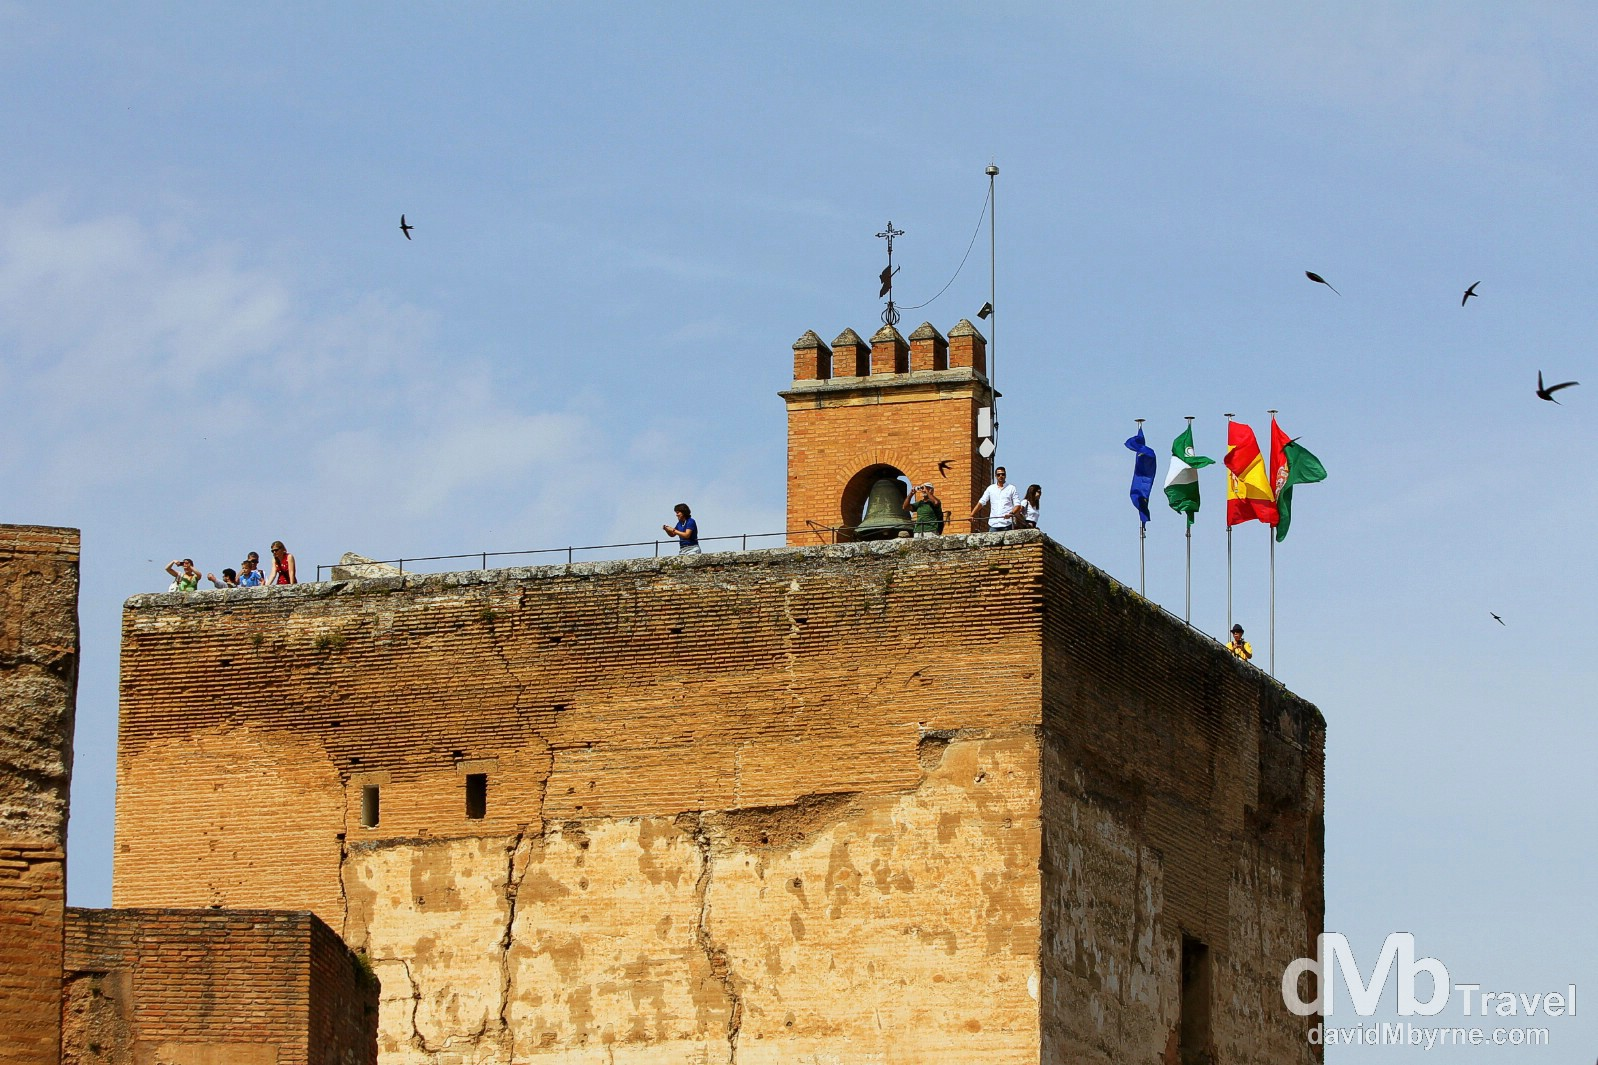 People atop the Torre de la Vela (Watchtower) in the Alcazaba (Citadel) in Granada, Andalusia, Spain. June 11th, 2014.